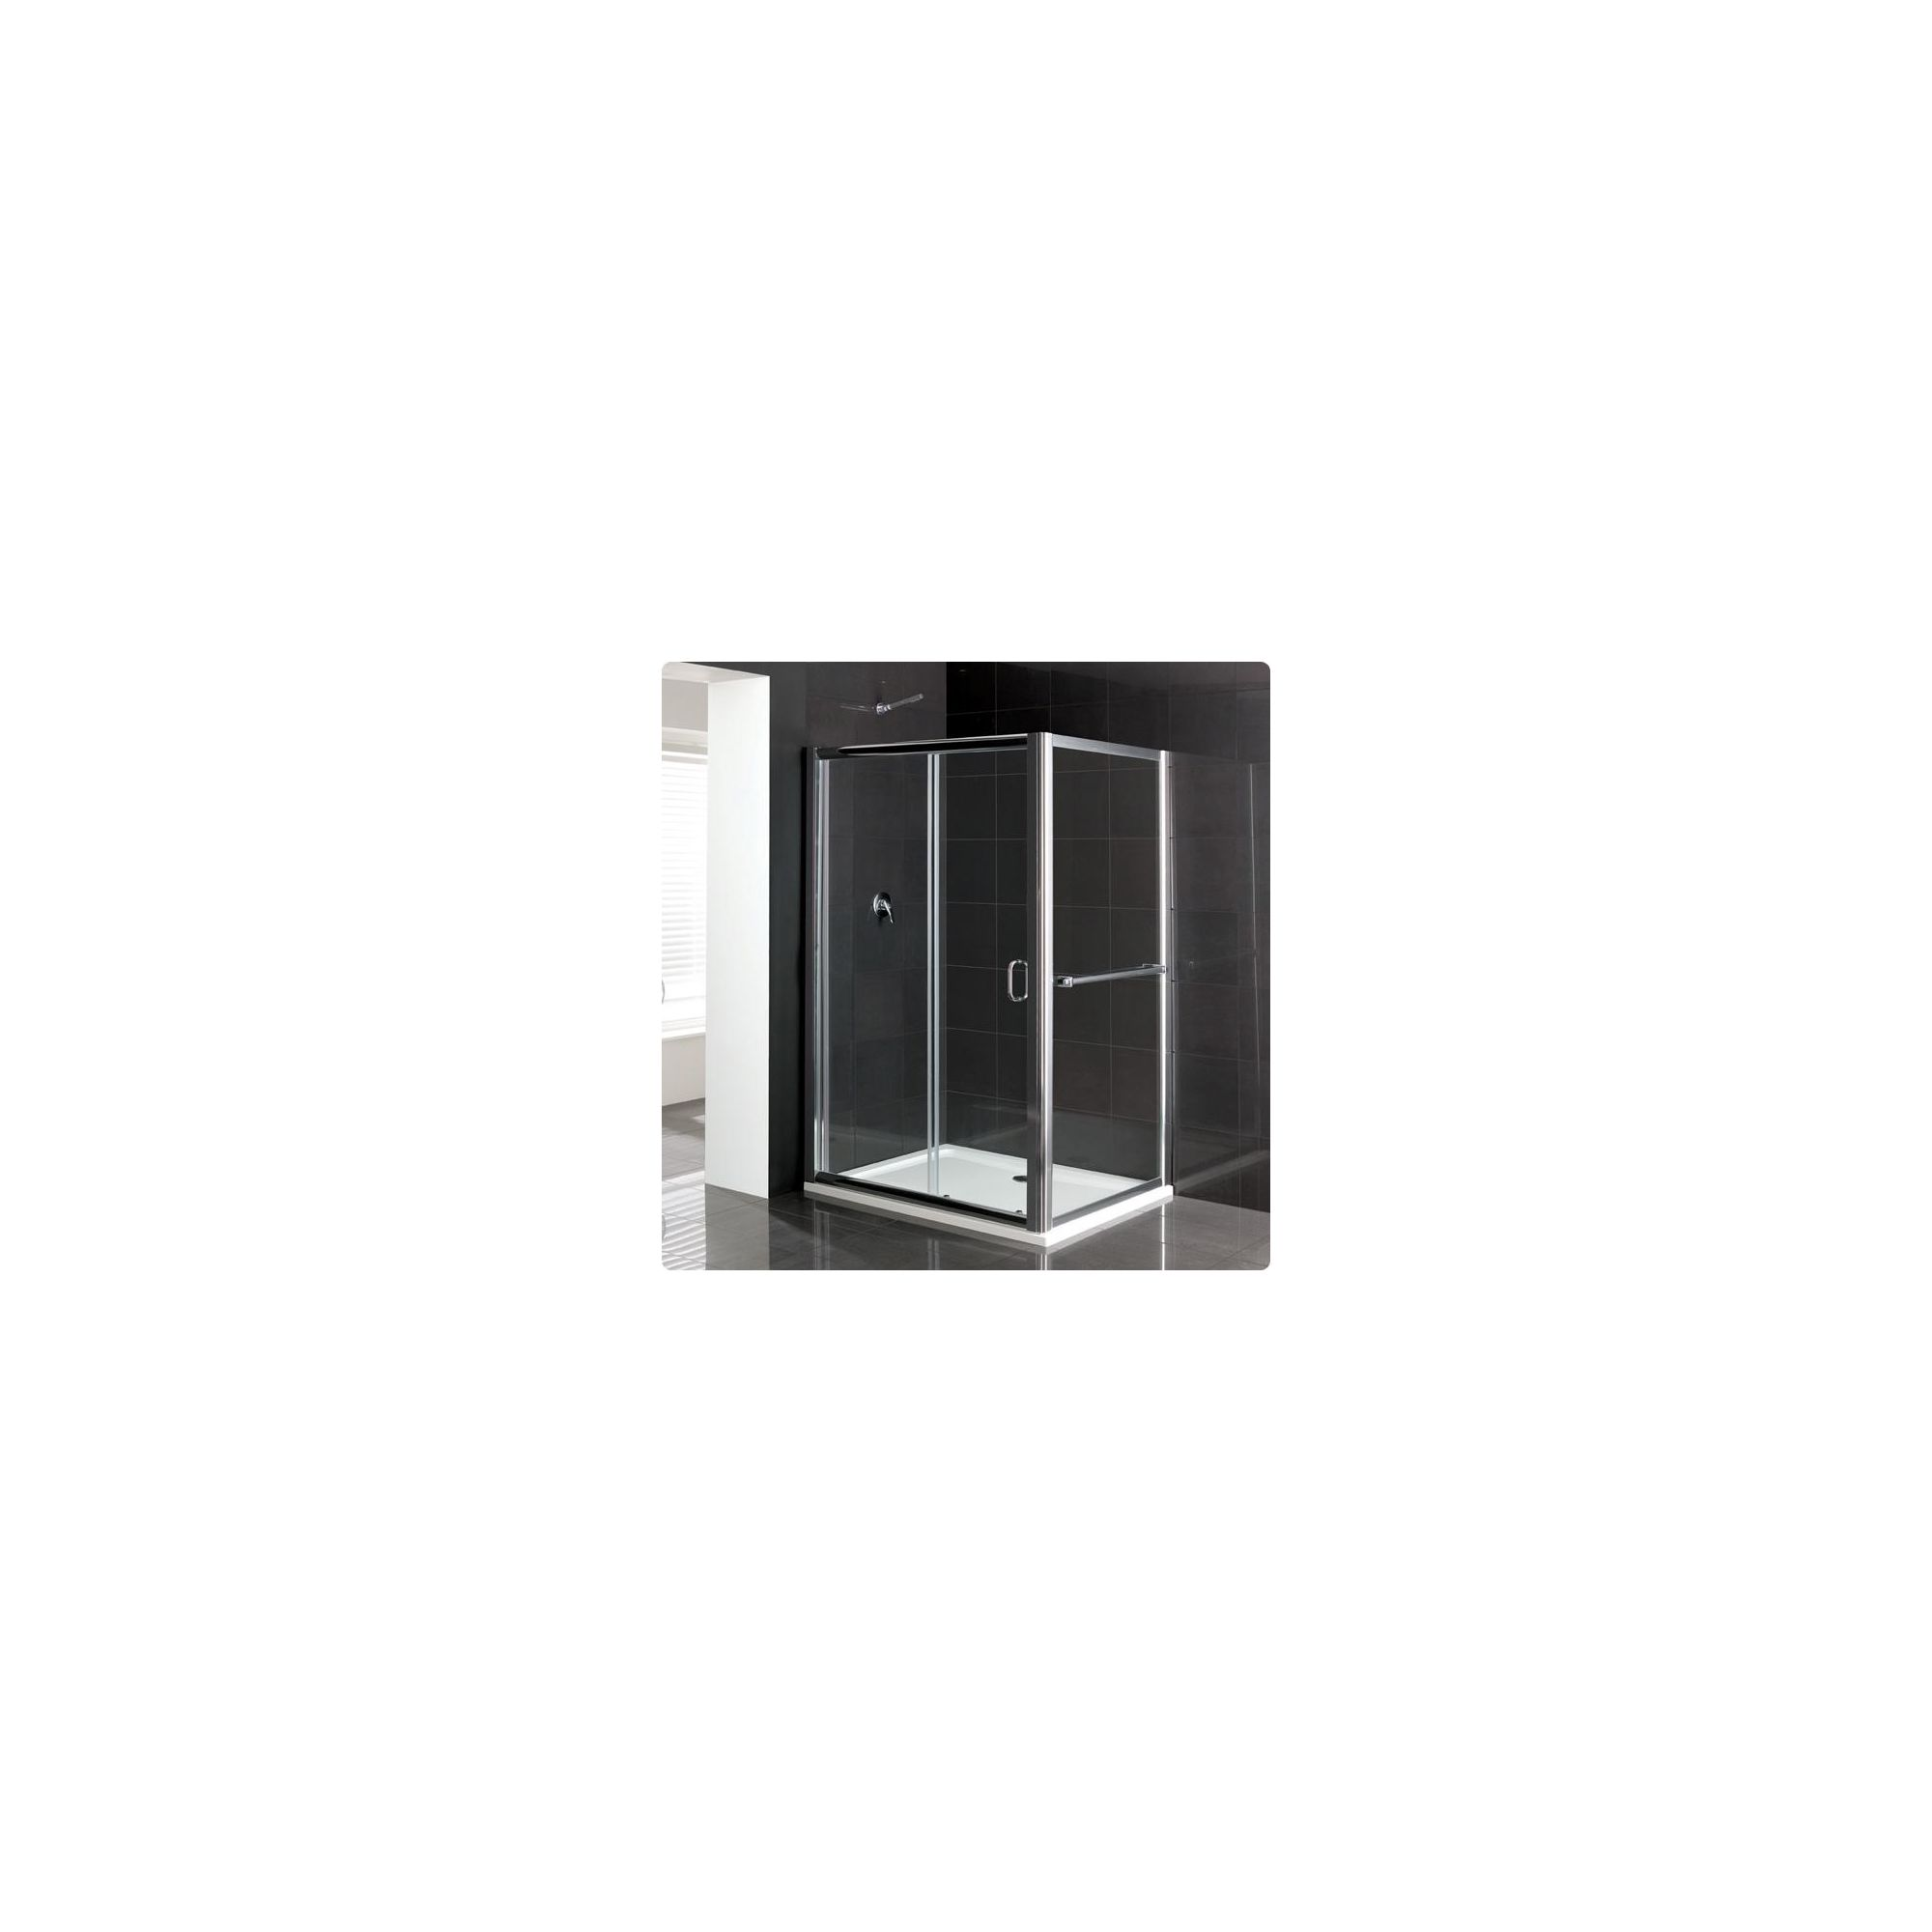 Duchy Elite Silver Sliding Door Shower Enclosure, 1100mm x 760mm, Standard Tray, 6mm Glass at Tesco Direct